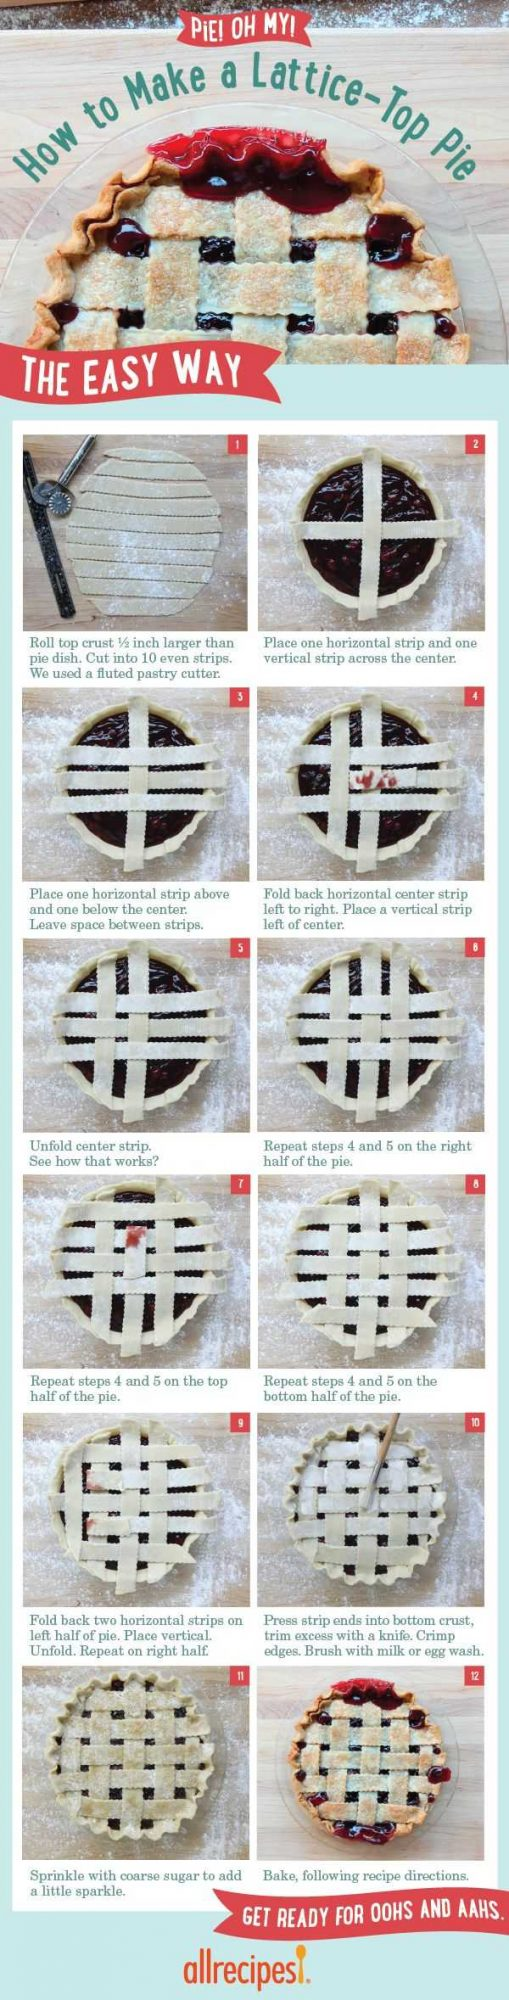 step-by-step guide to weaving a lattice top for pie